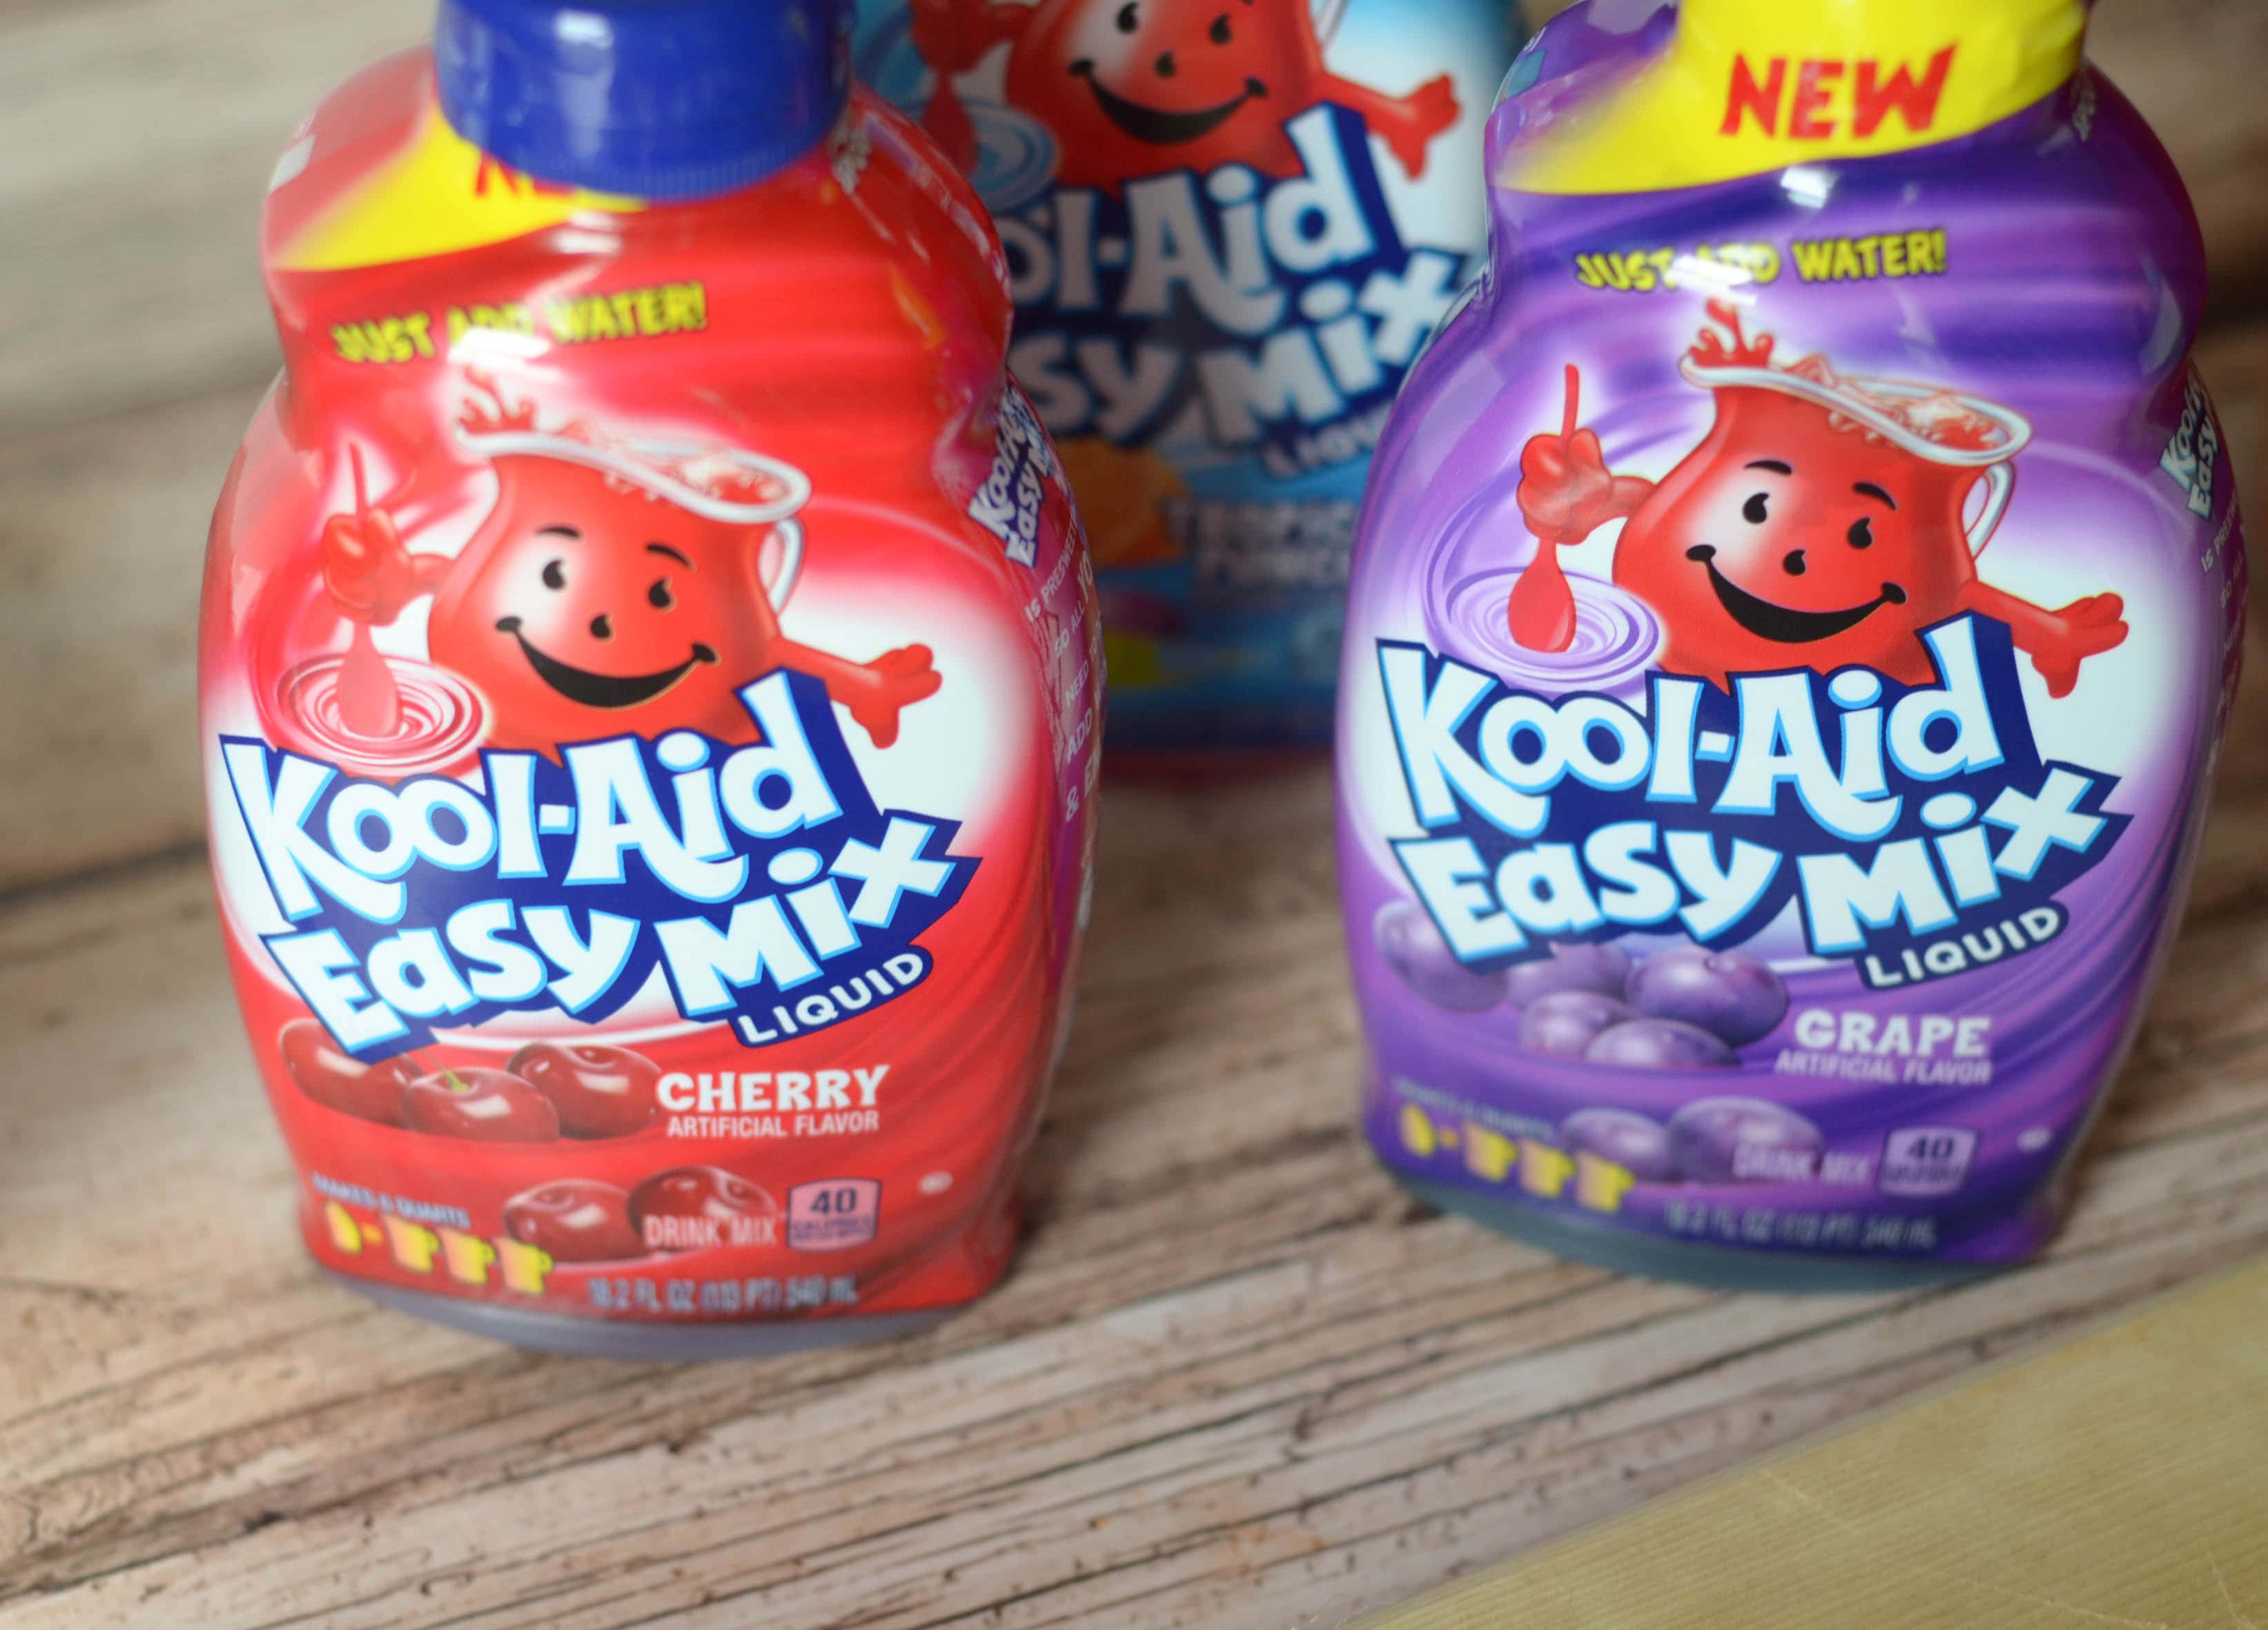 Cherry kool aid cupcakes mommy hates cooking cherry kool aid cupcakes pourmorefun ad sciox Choice Image